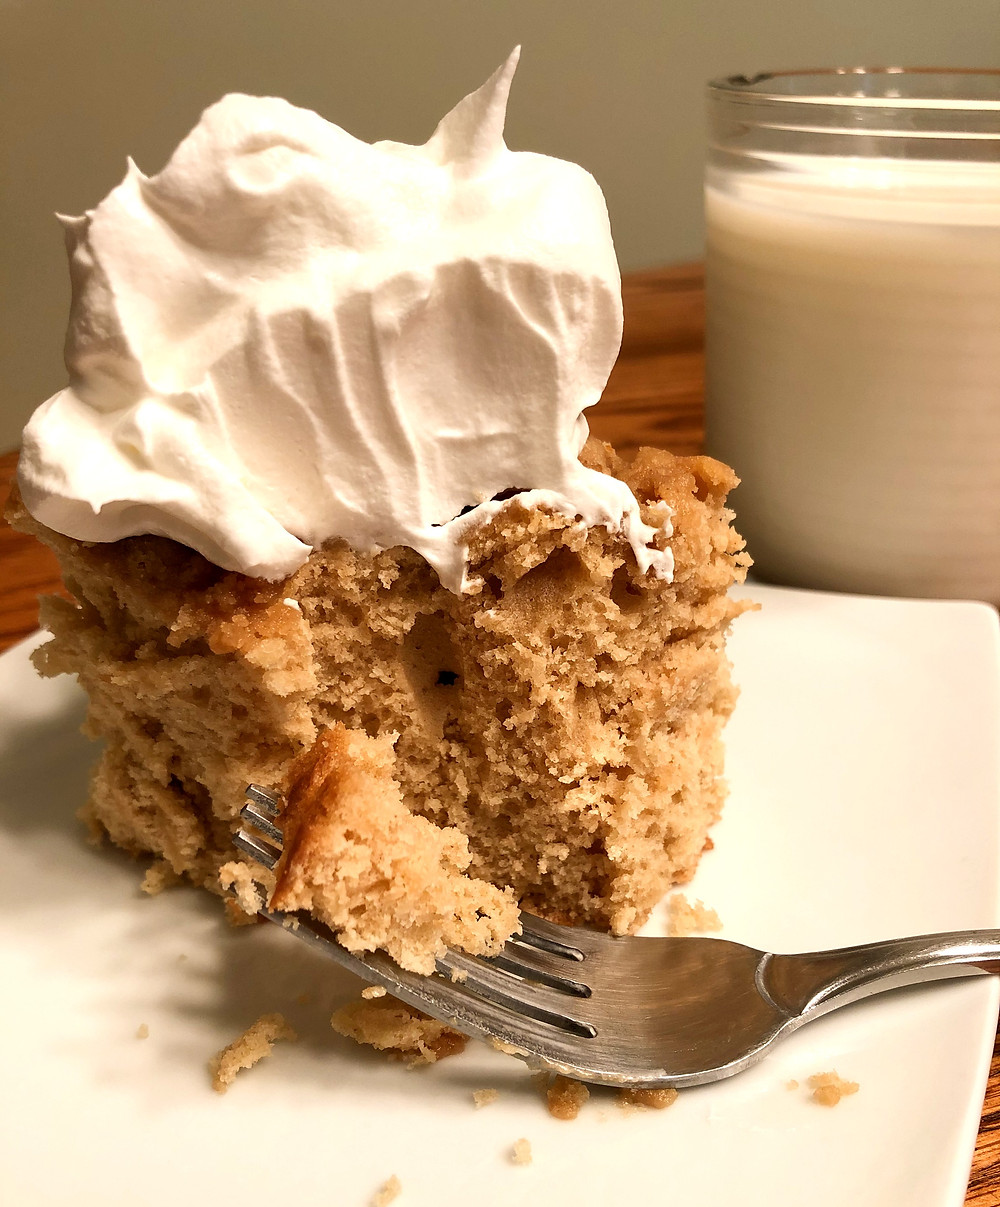 A fork sits in front of a piece of brown crumbly cake, with a piece cut and ready to eat.  The cake is topped with white whipped topping and a glass of white milk sits behind the plate of cake.